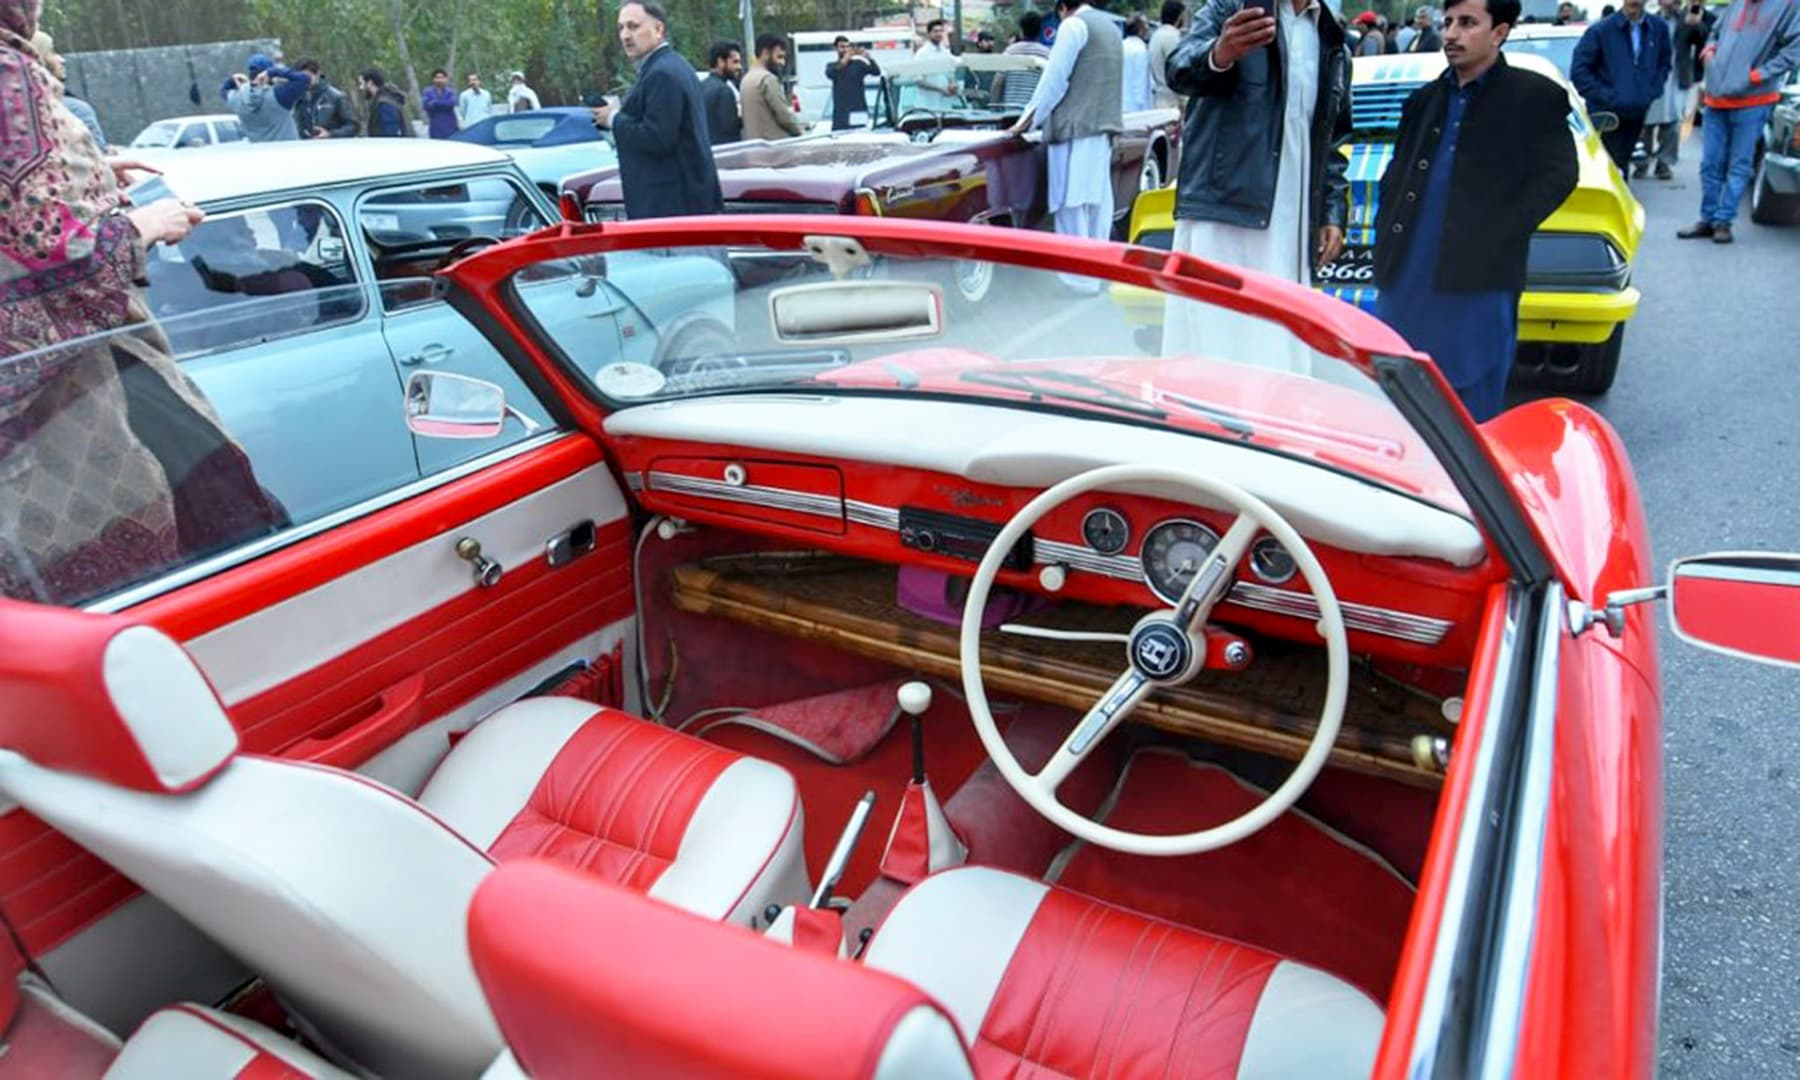 The well-maintained interior is evidence of the love for vintage cars in Pakistan. —@PTIofficial